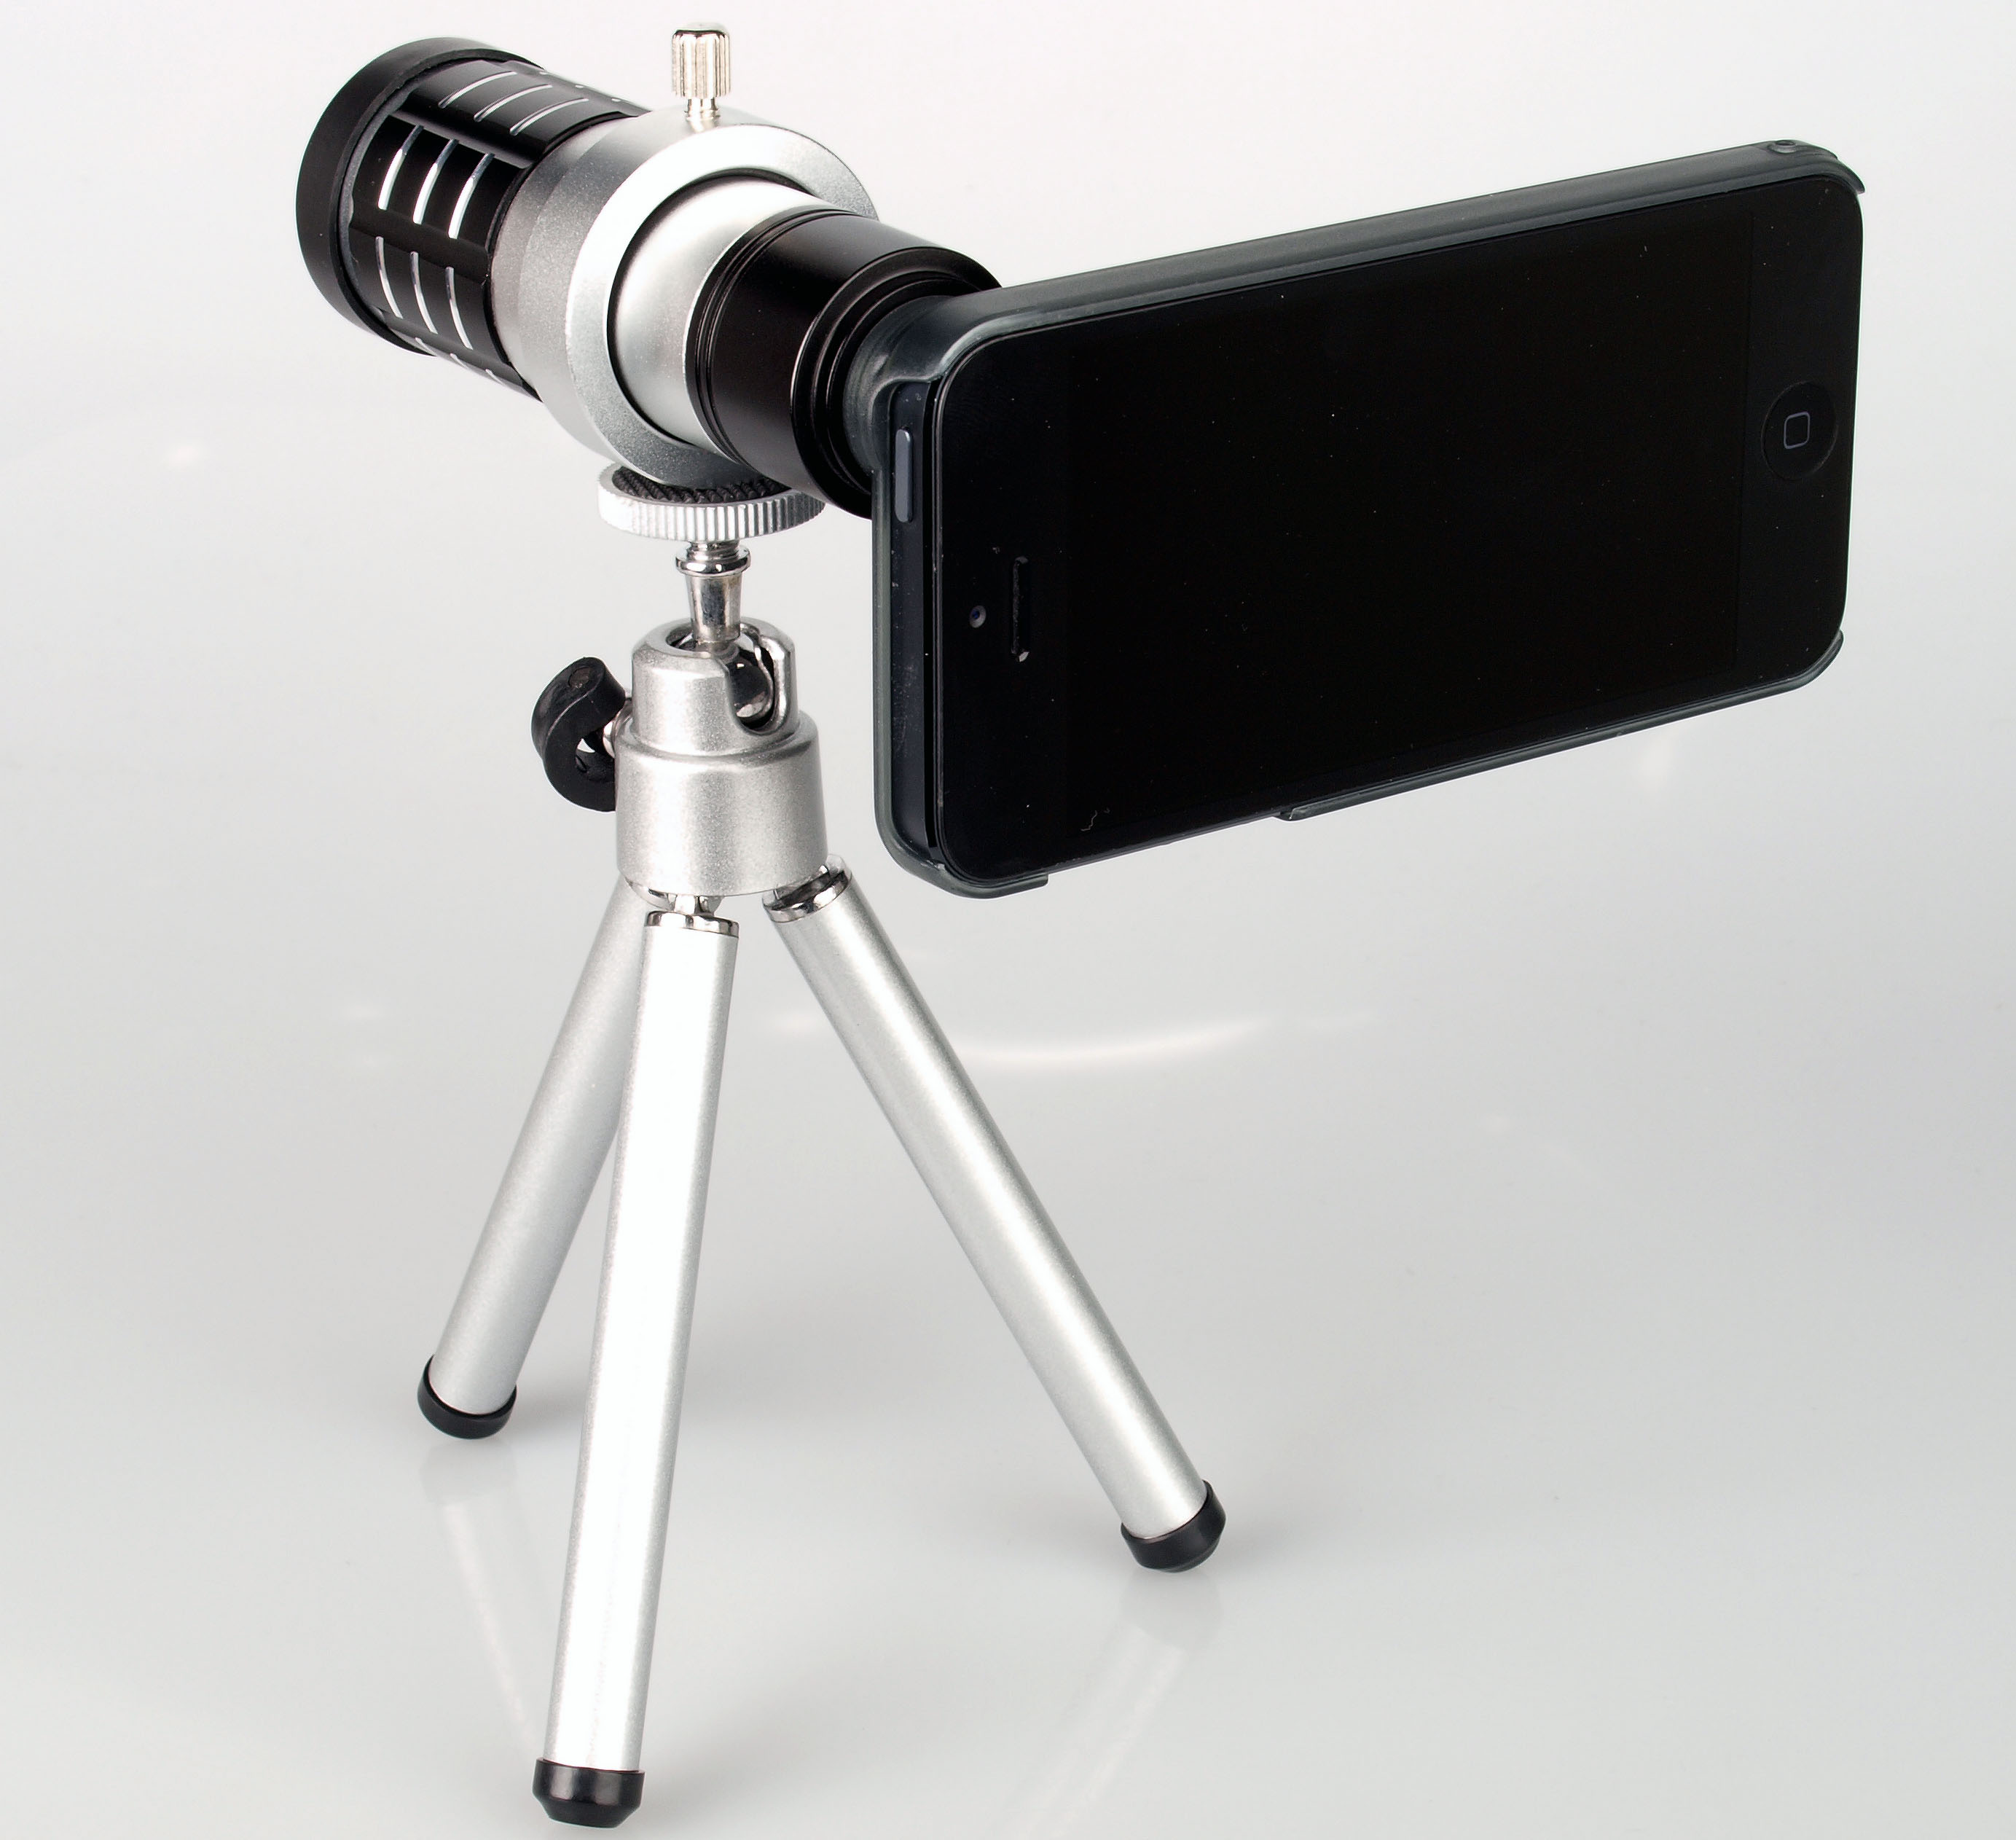 iphone 5 lens vtec 12x telephoto lens for iphone 5 review 11008